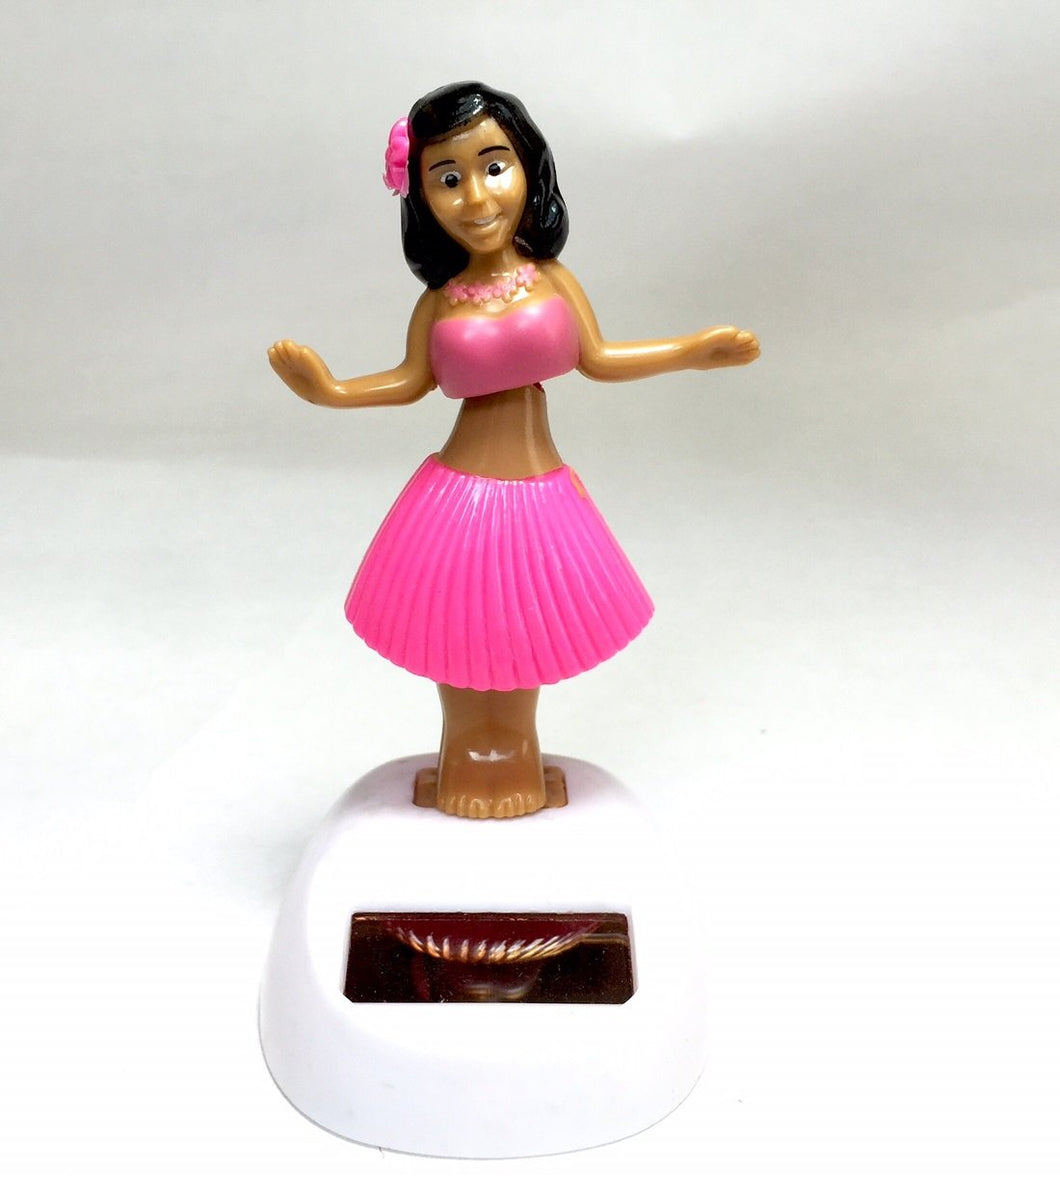 721321 HULA DANCER SOLAR DANCING TOY-1 piece